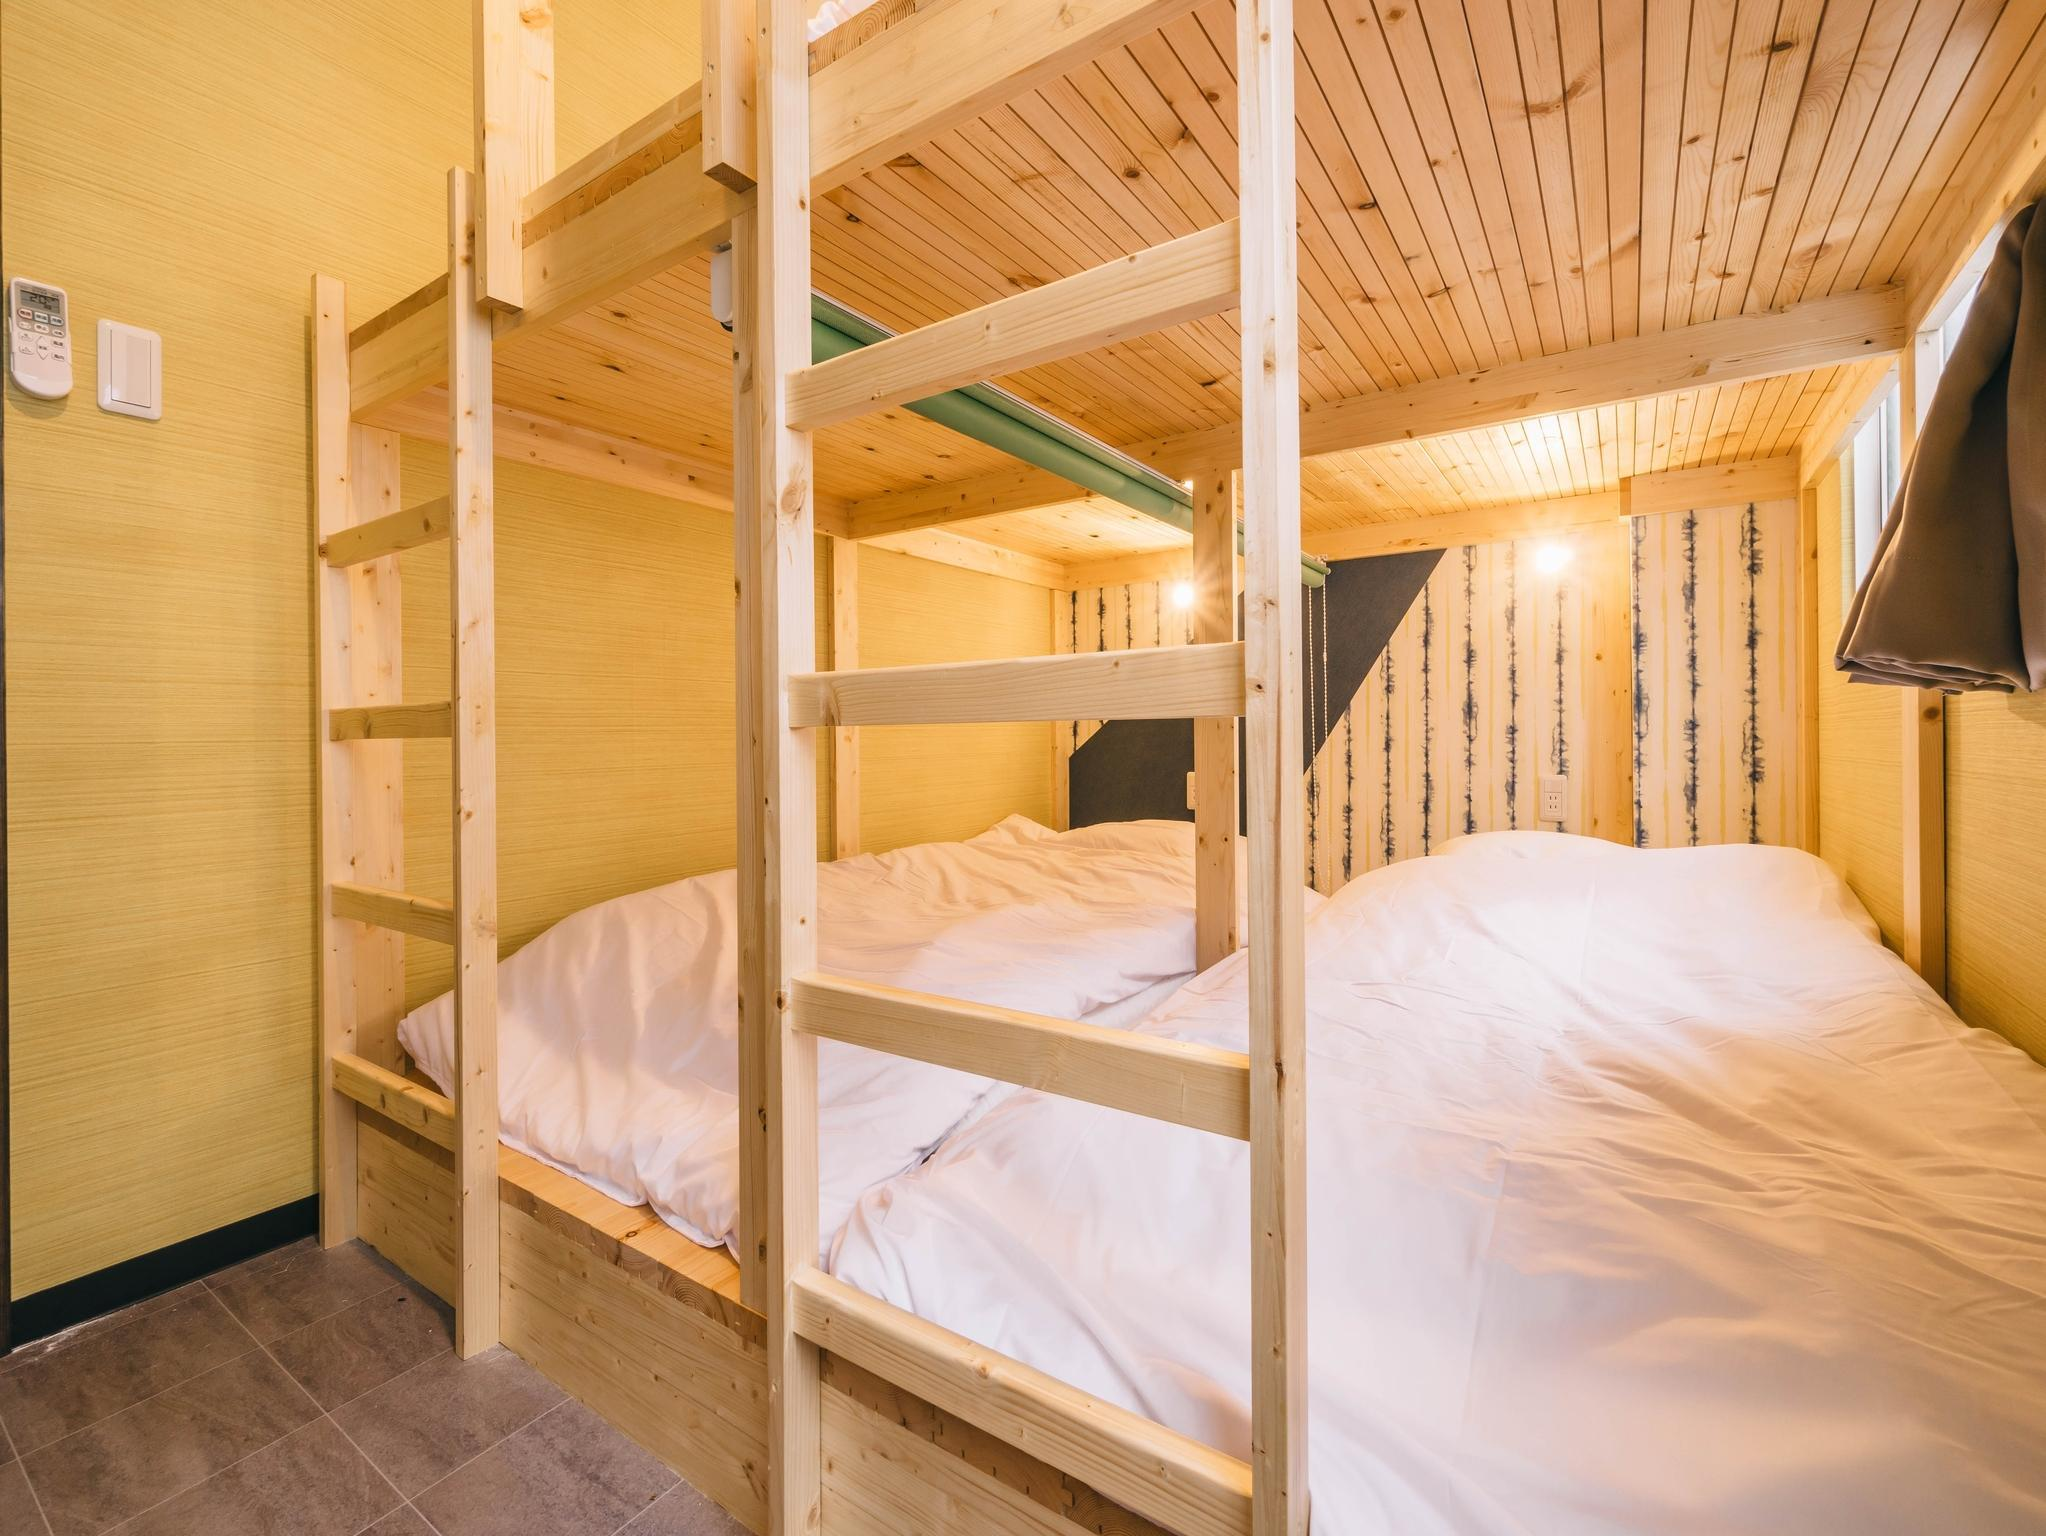 【個室】二段ベッド(4名) (Private Room for 4 People with Bunk Bed)